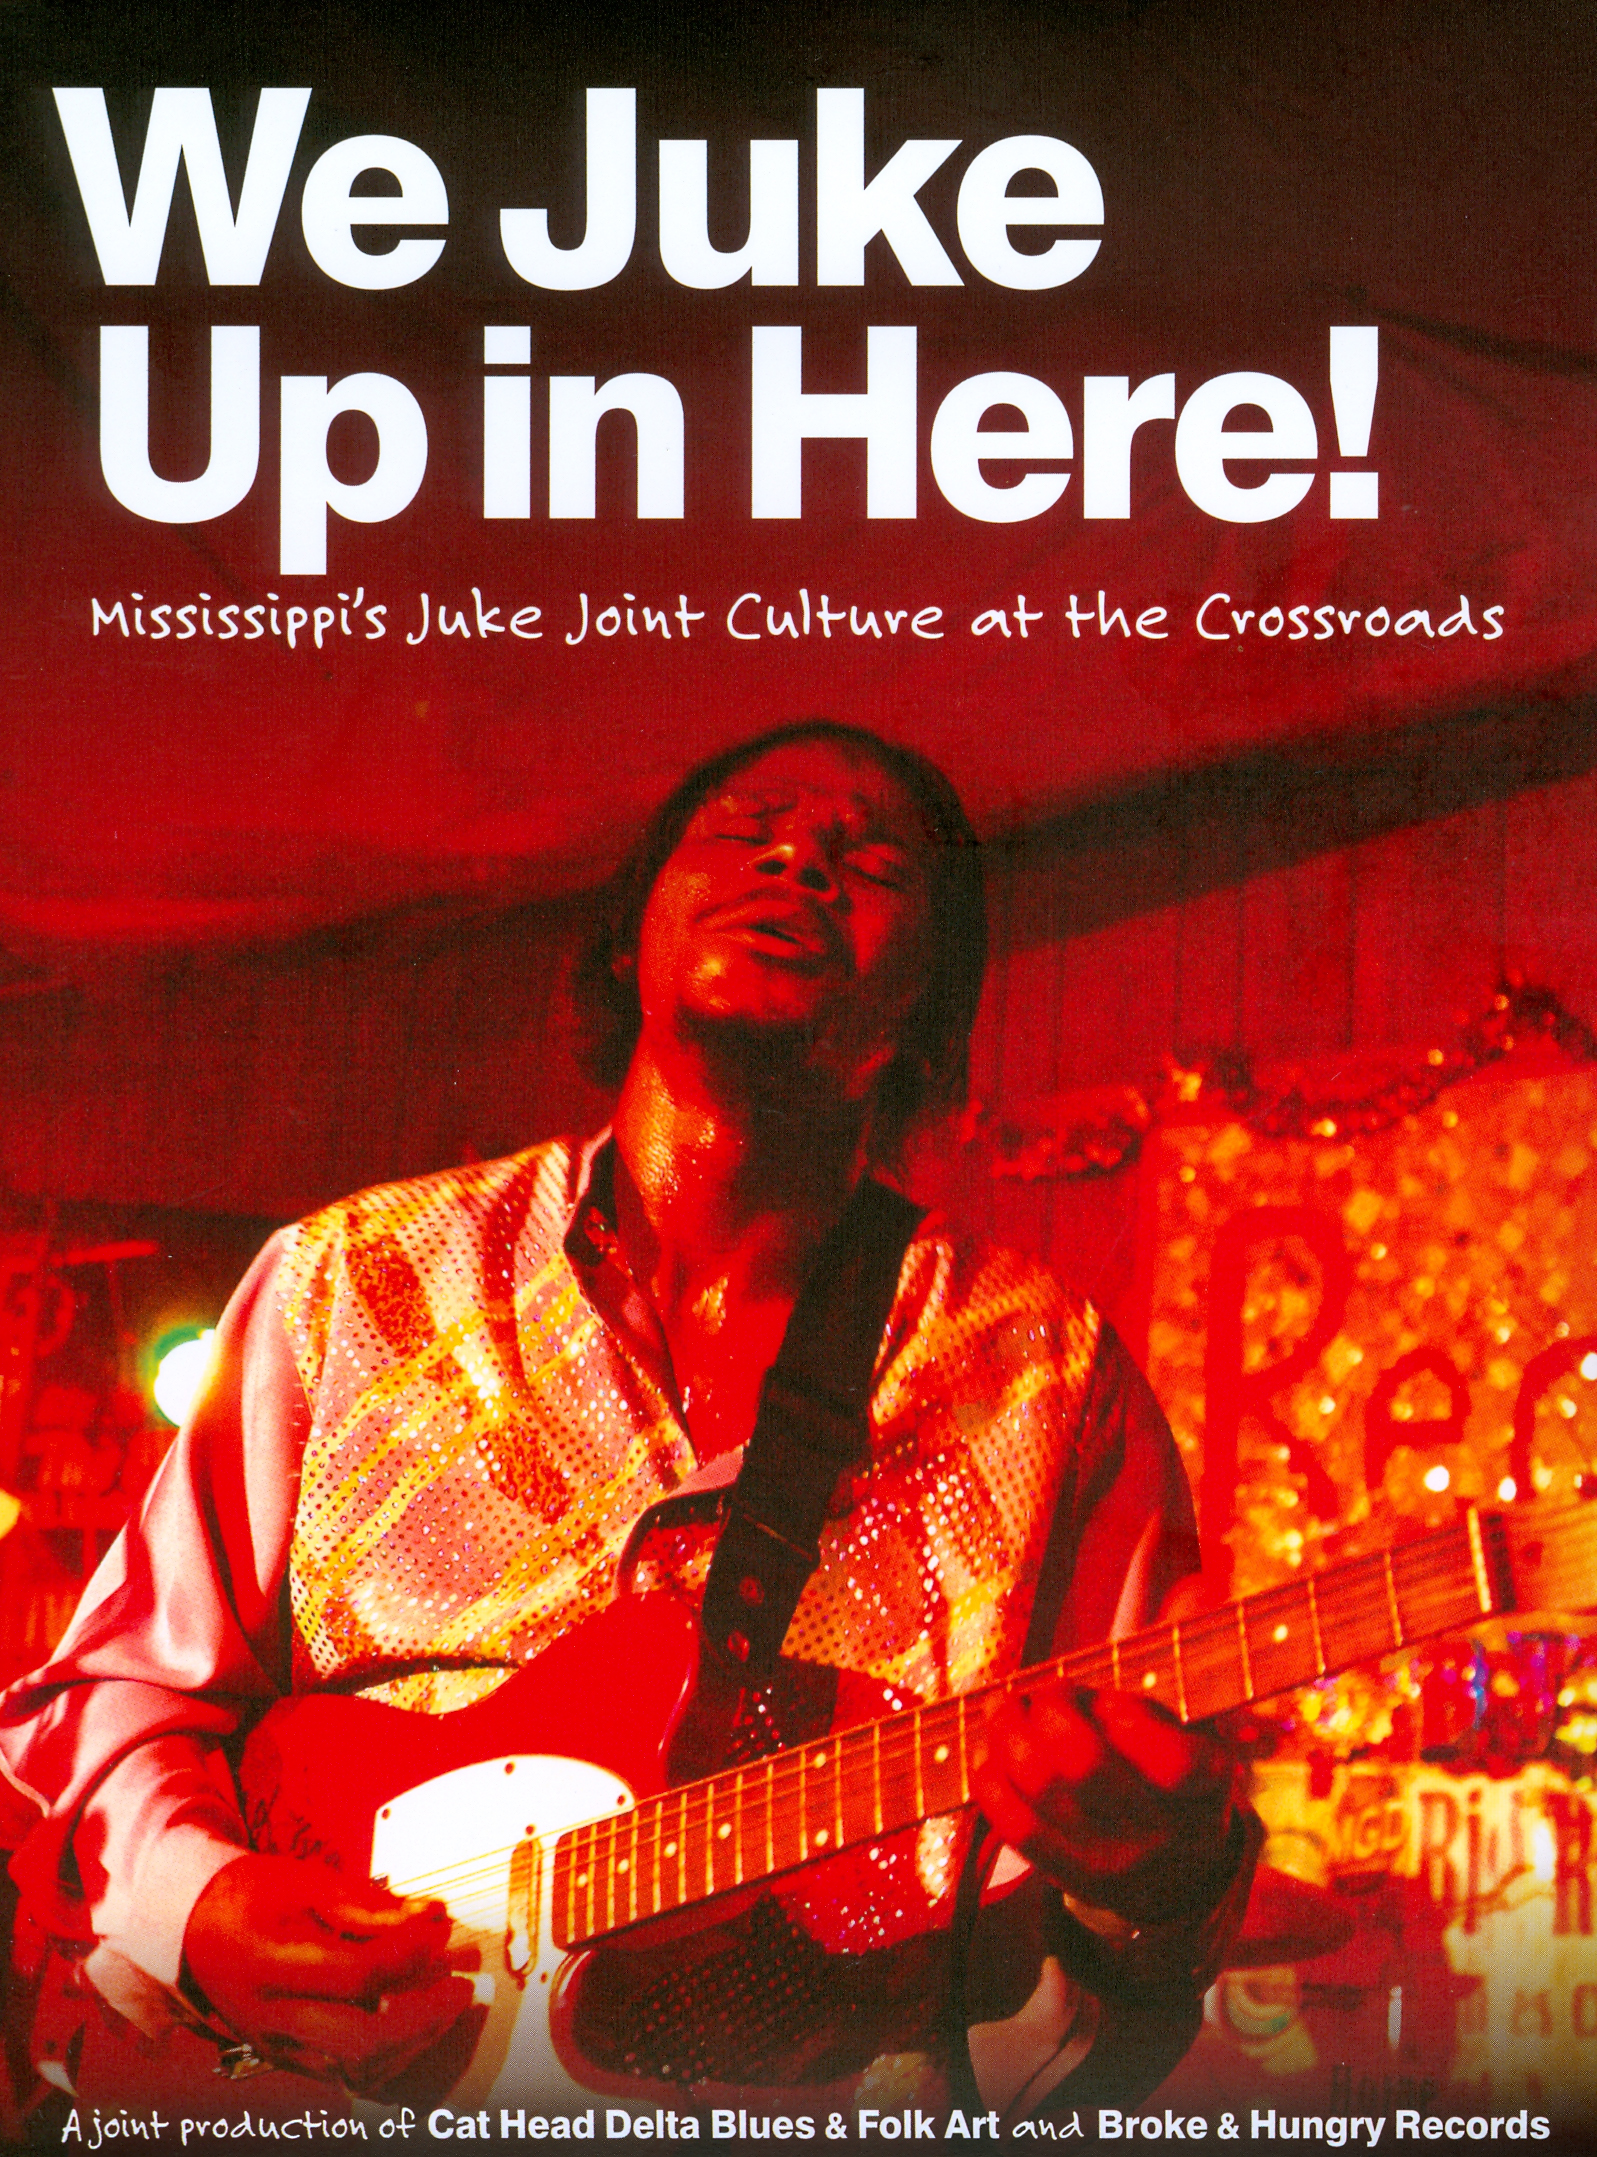 We Juke Up in Here! Mississippi Juke Joint Culture at the Crossroads